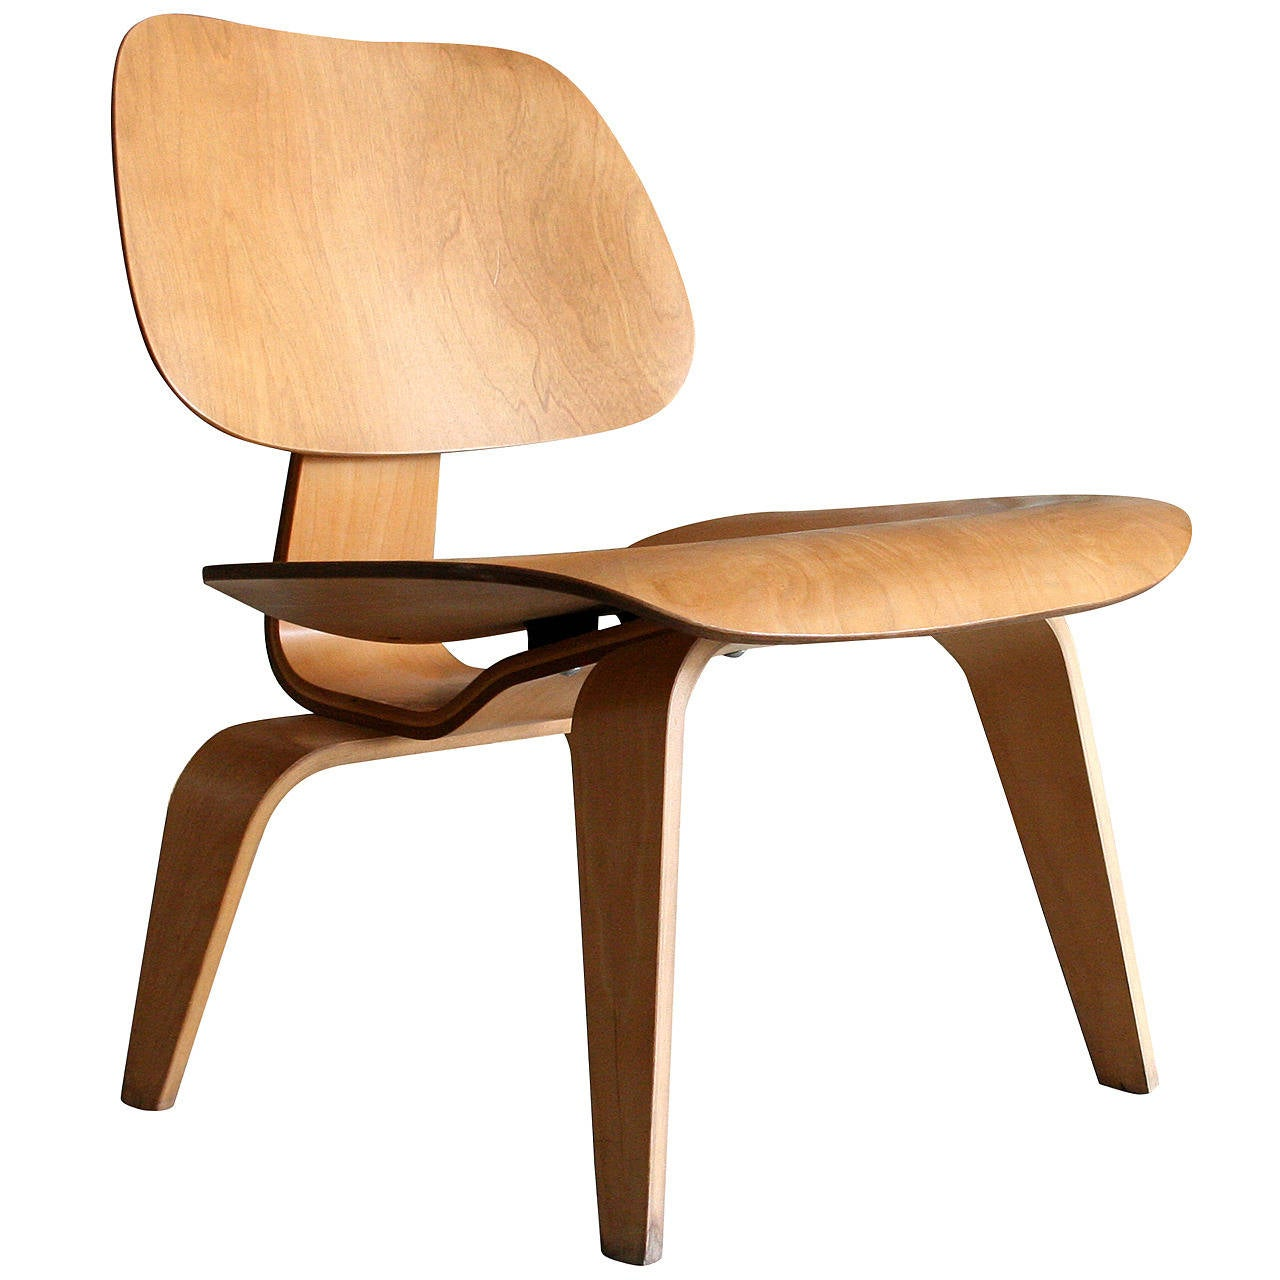 39 lounge chair wood 39 lcw by charles eames for herman miller. Black Bedroom Furniture Sets. Home Design Ideas